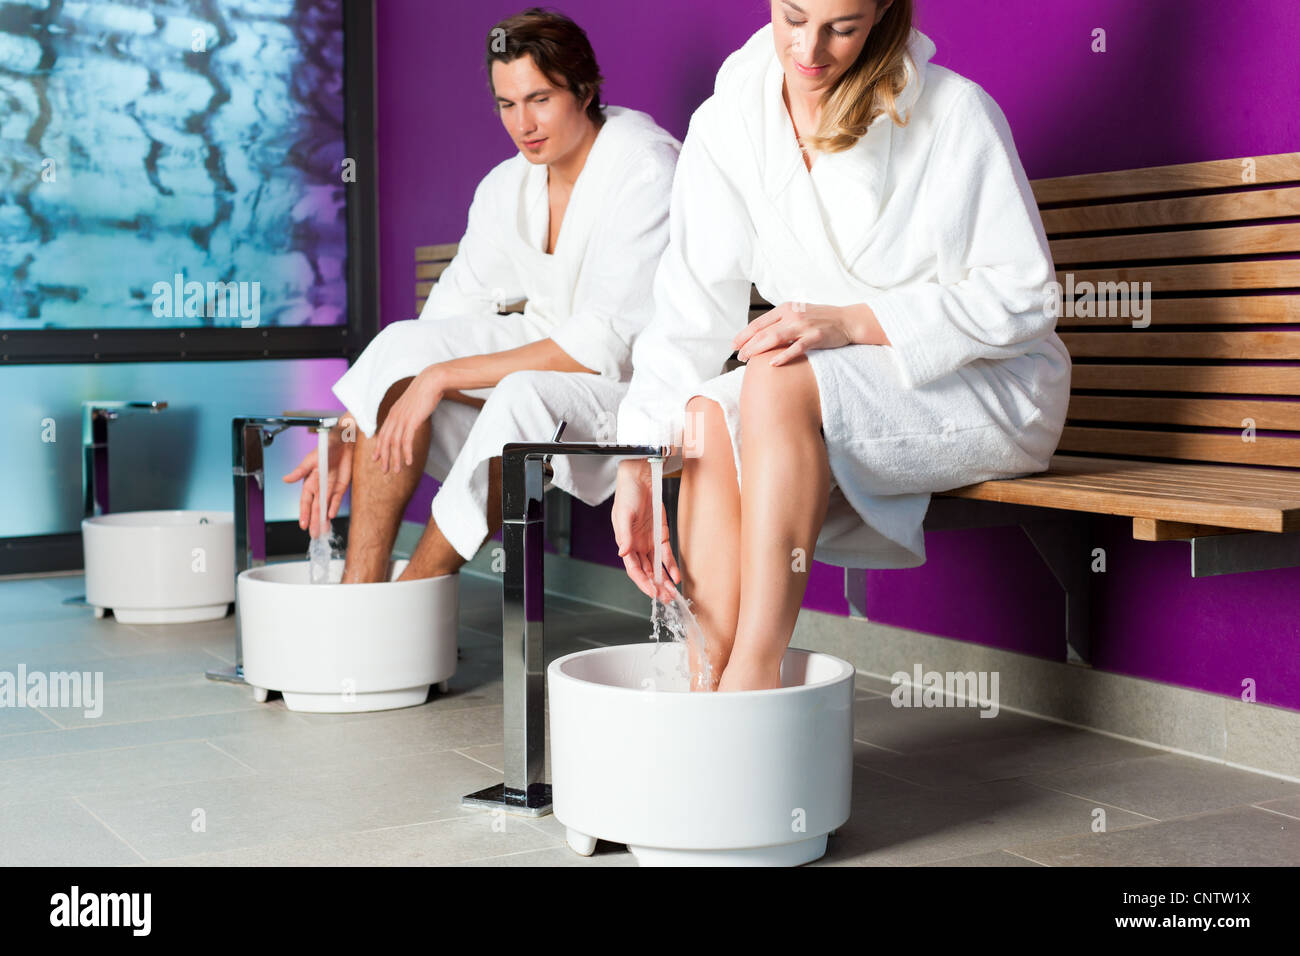 Couple - man and woman - having hydrotherapy water footbath in spa setting - Stock Image